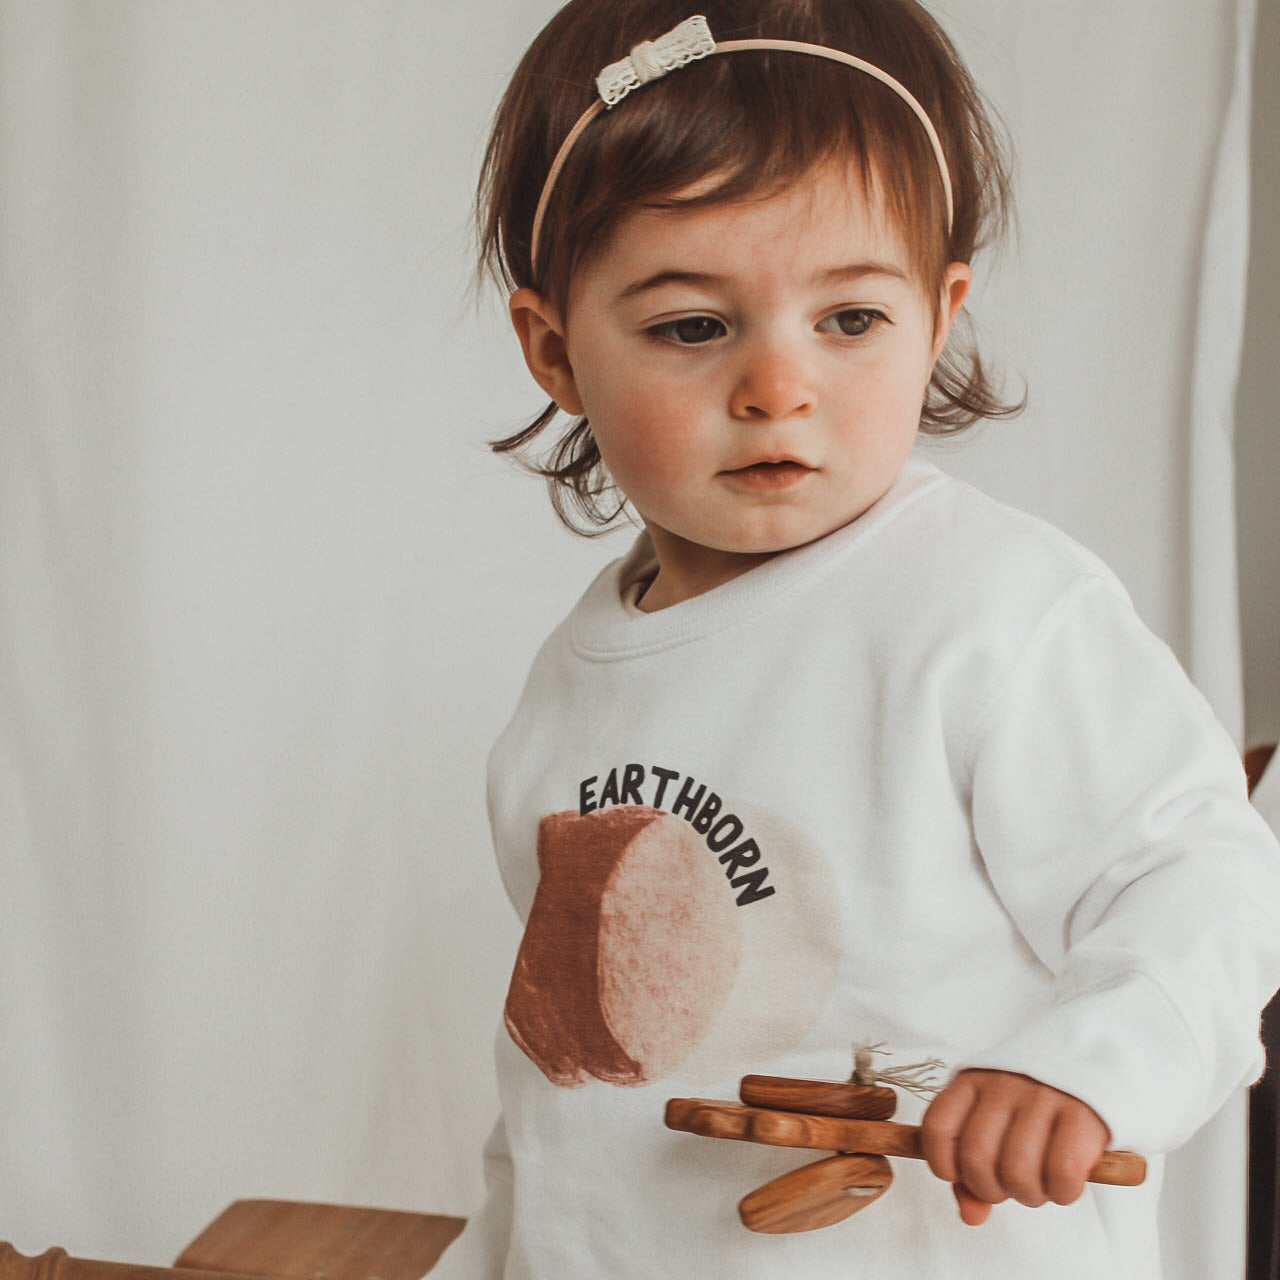 Toddler girl holding a wooden rattle and wearing a white sweatshirt printed with neutral colored circles and the word Earthborn